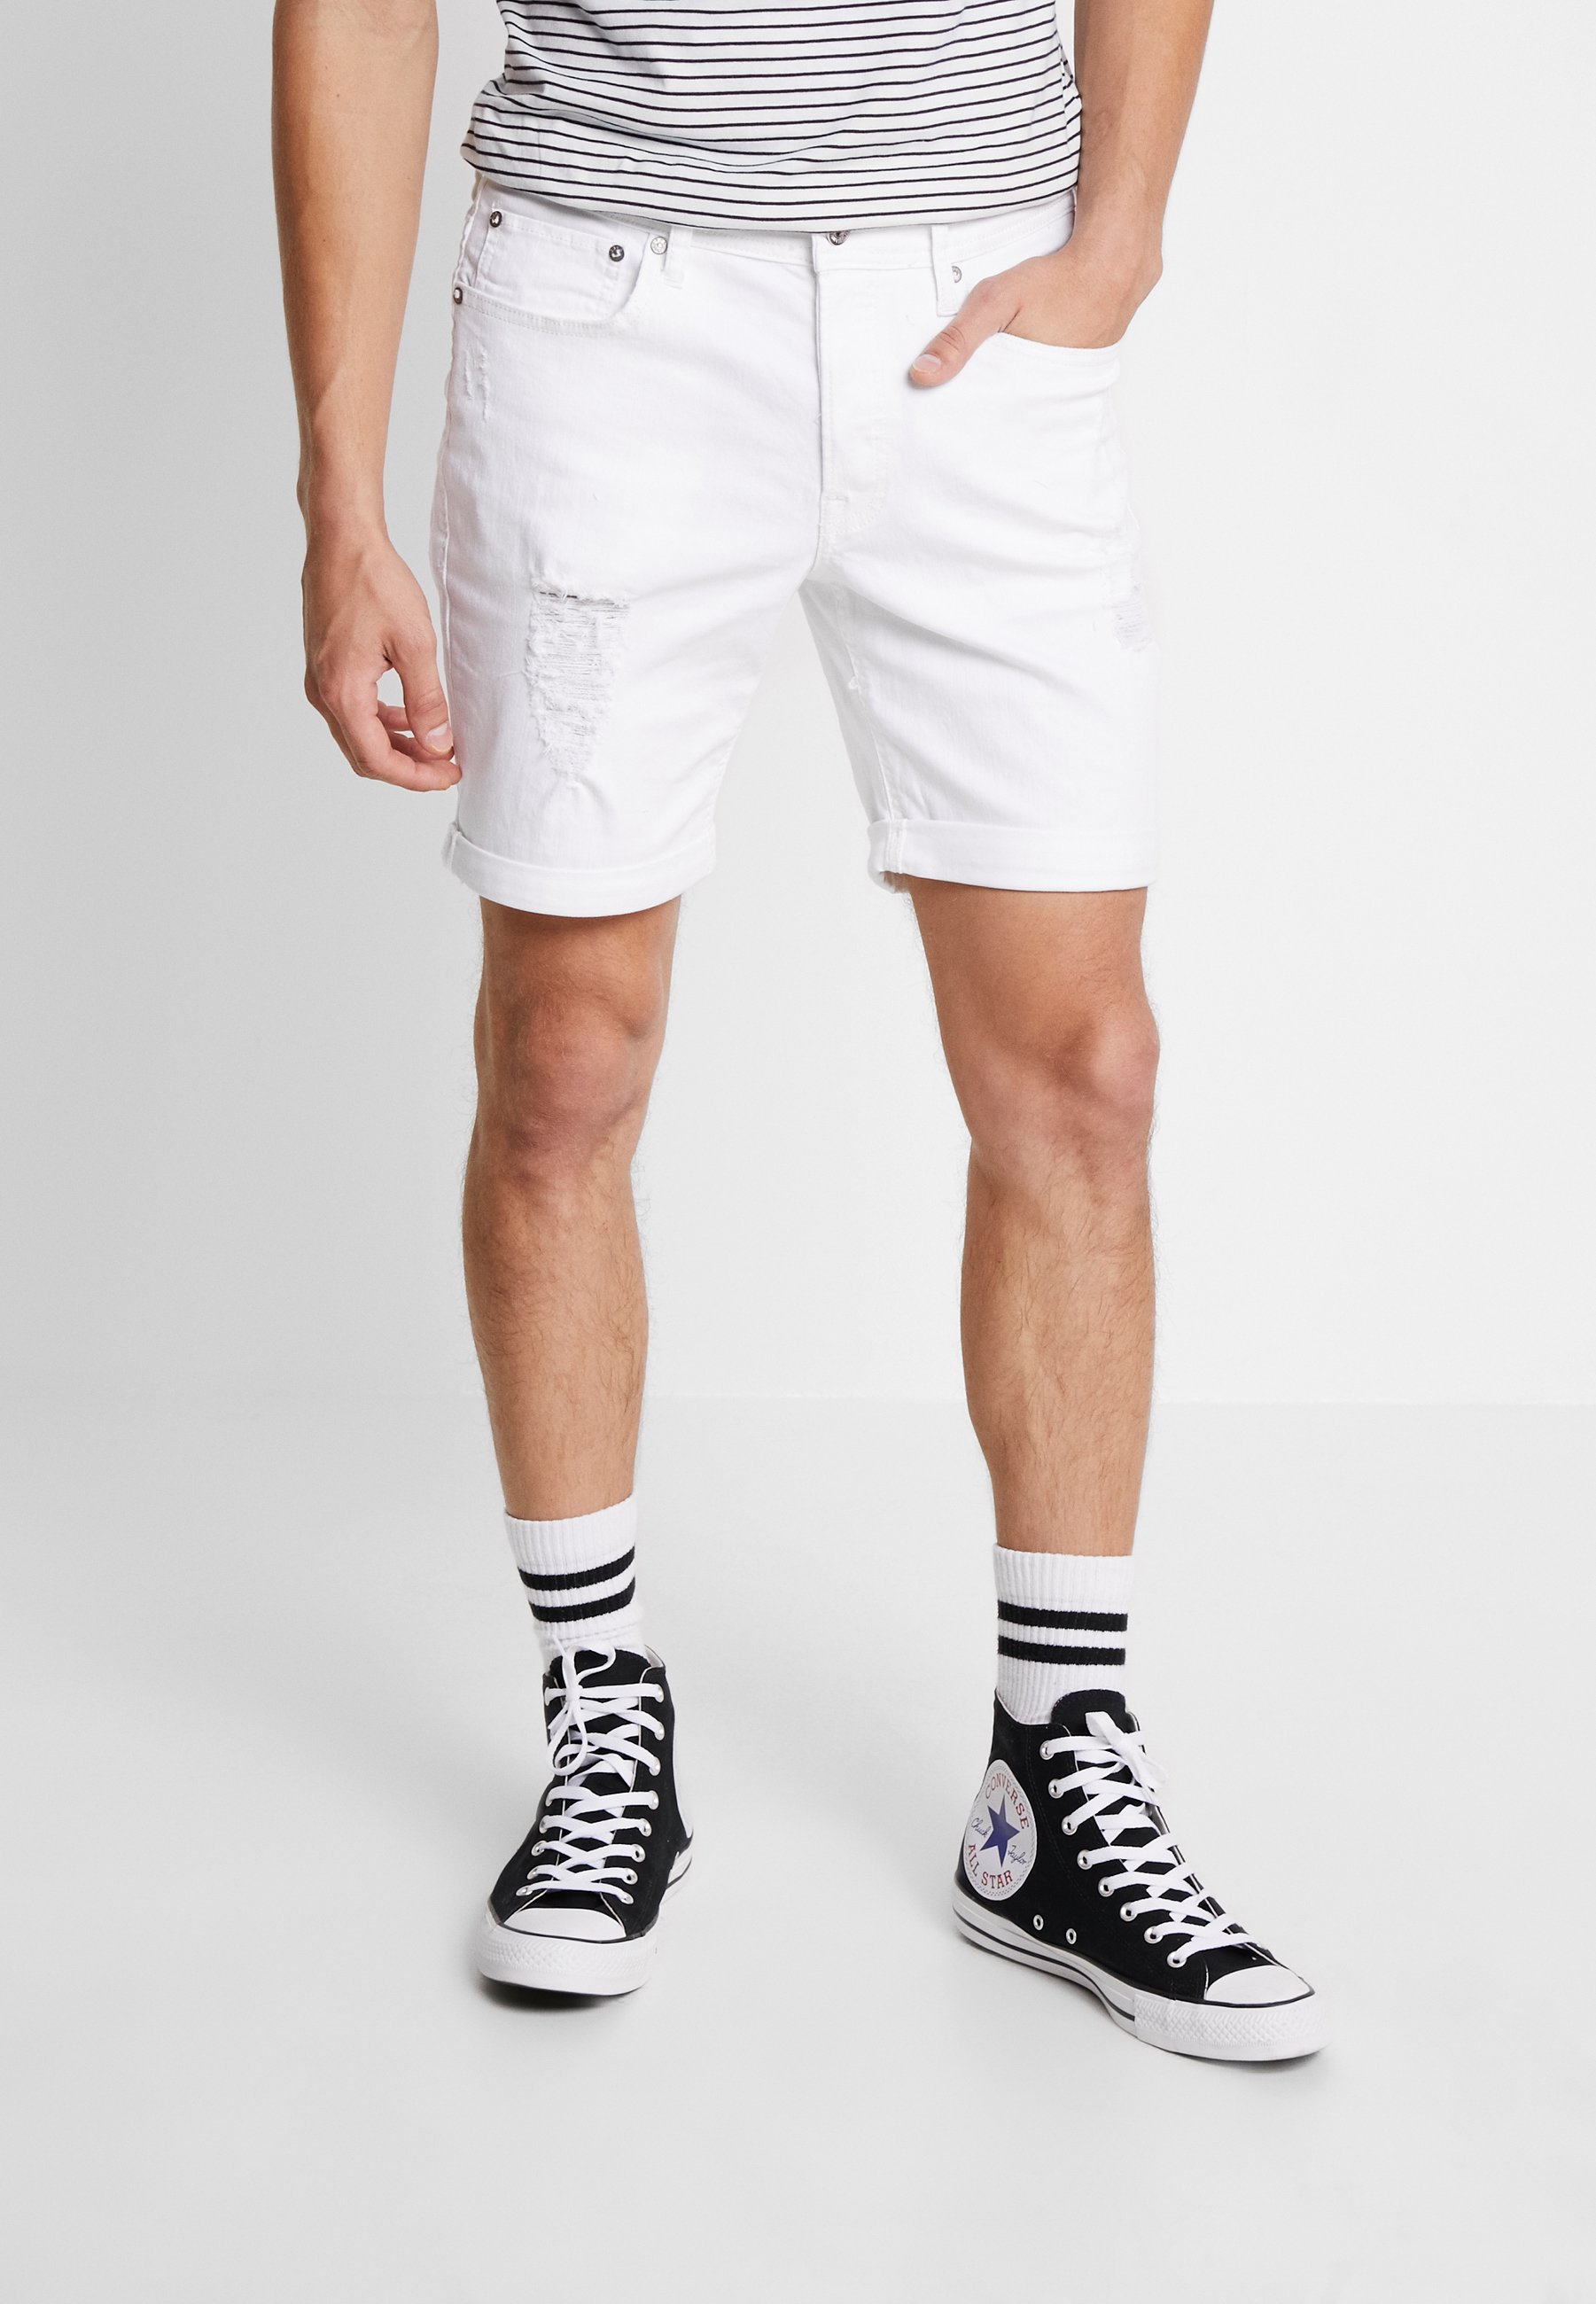 Jjirick Jackamp; White JjoriginalShort En Jean Jones Yvfgb7y6